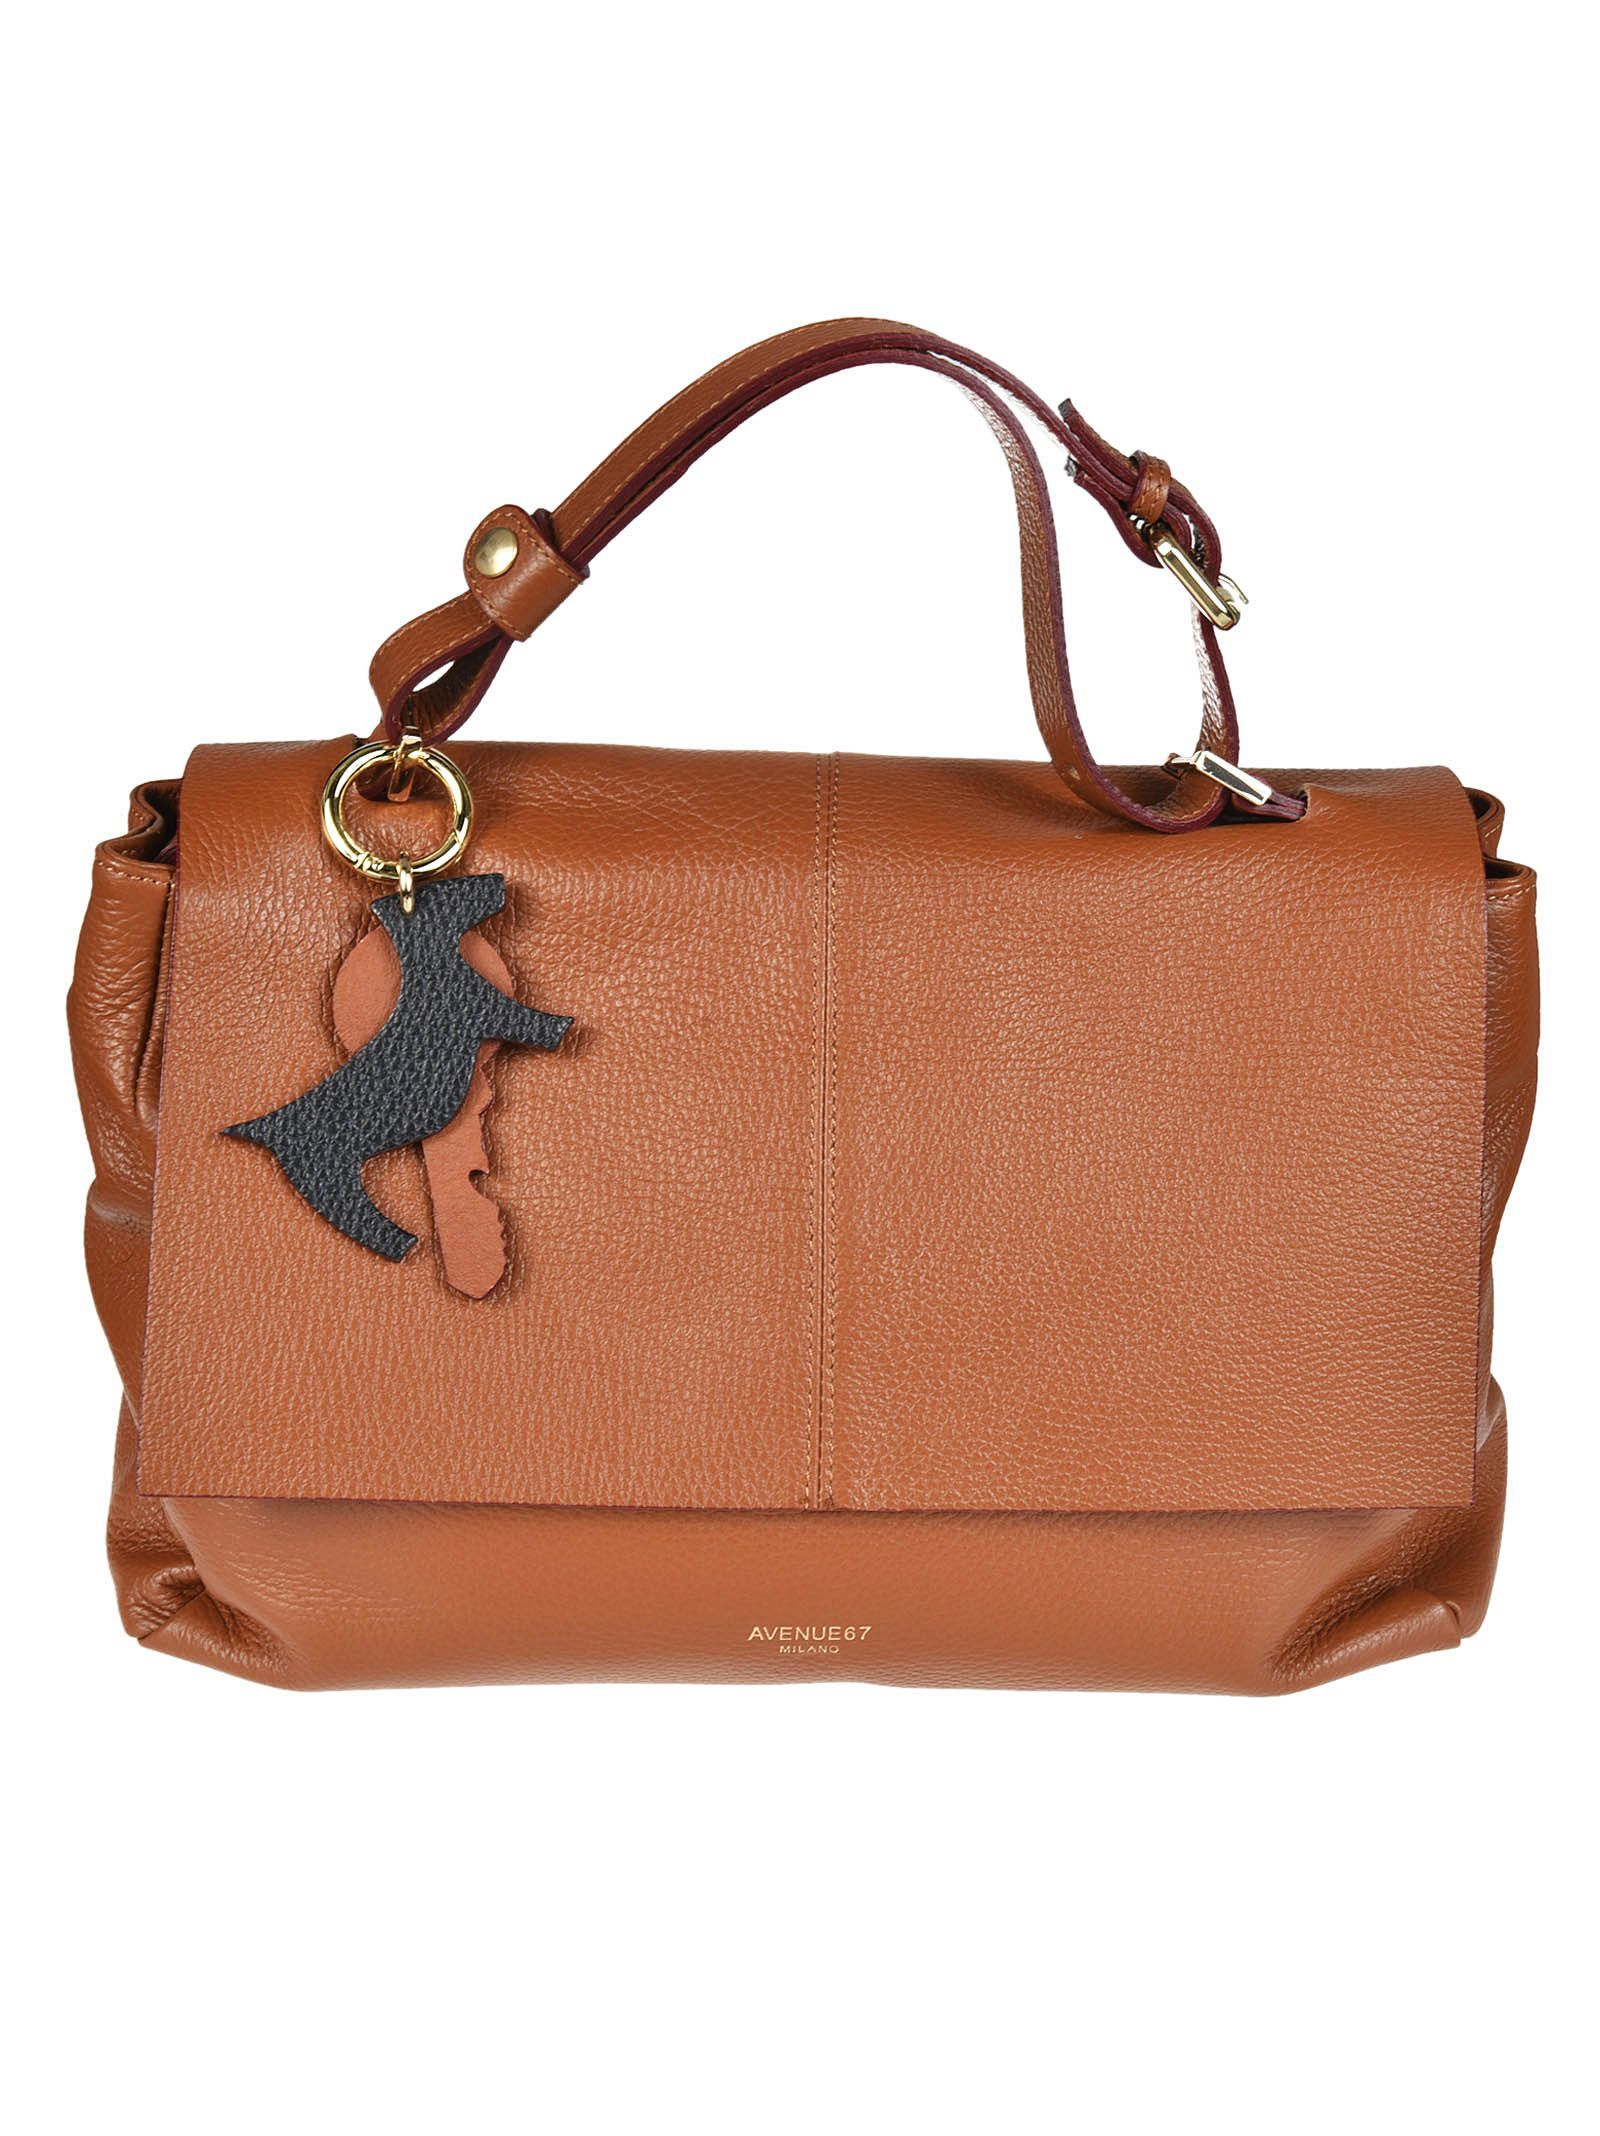 AVENUE 67 .  avenue67  bags  leather  hand bags  tote    4f2295185c7